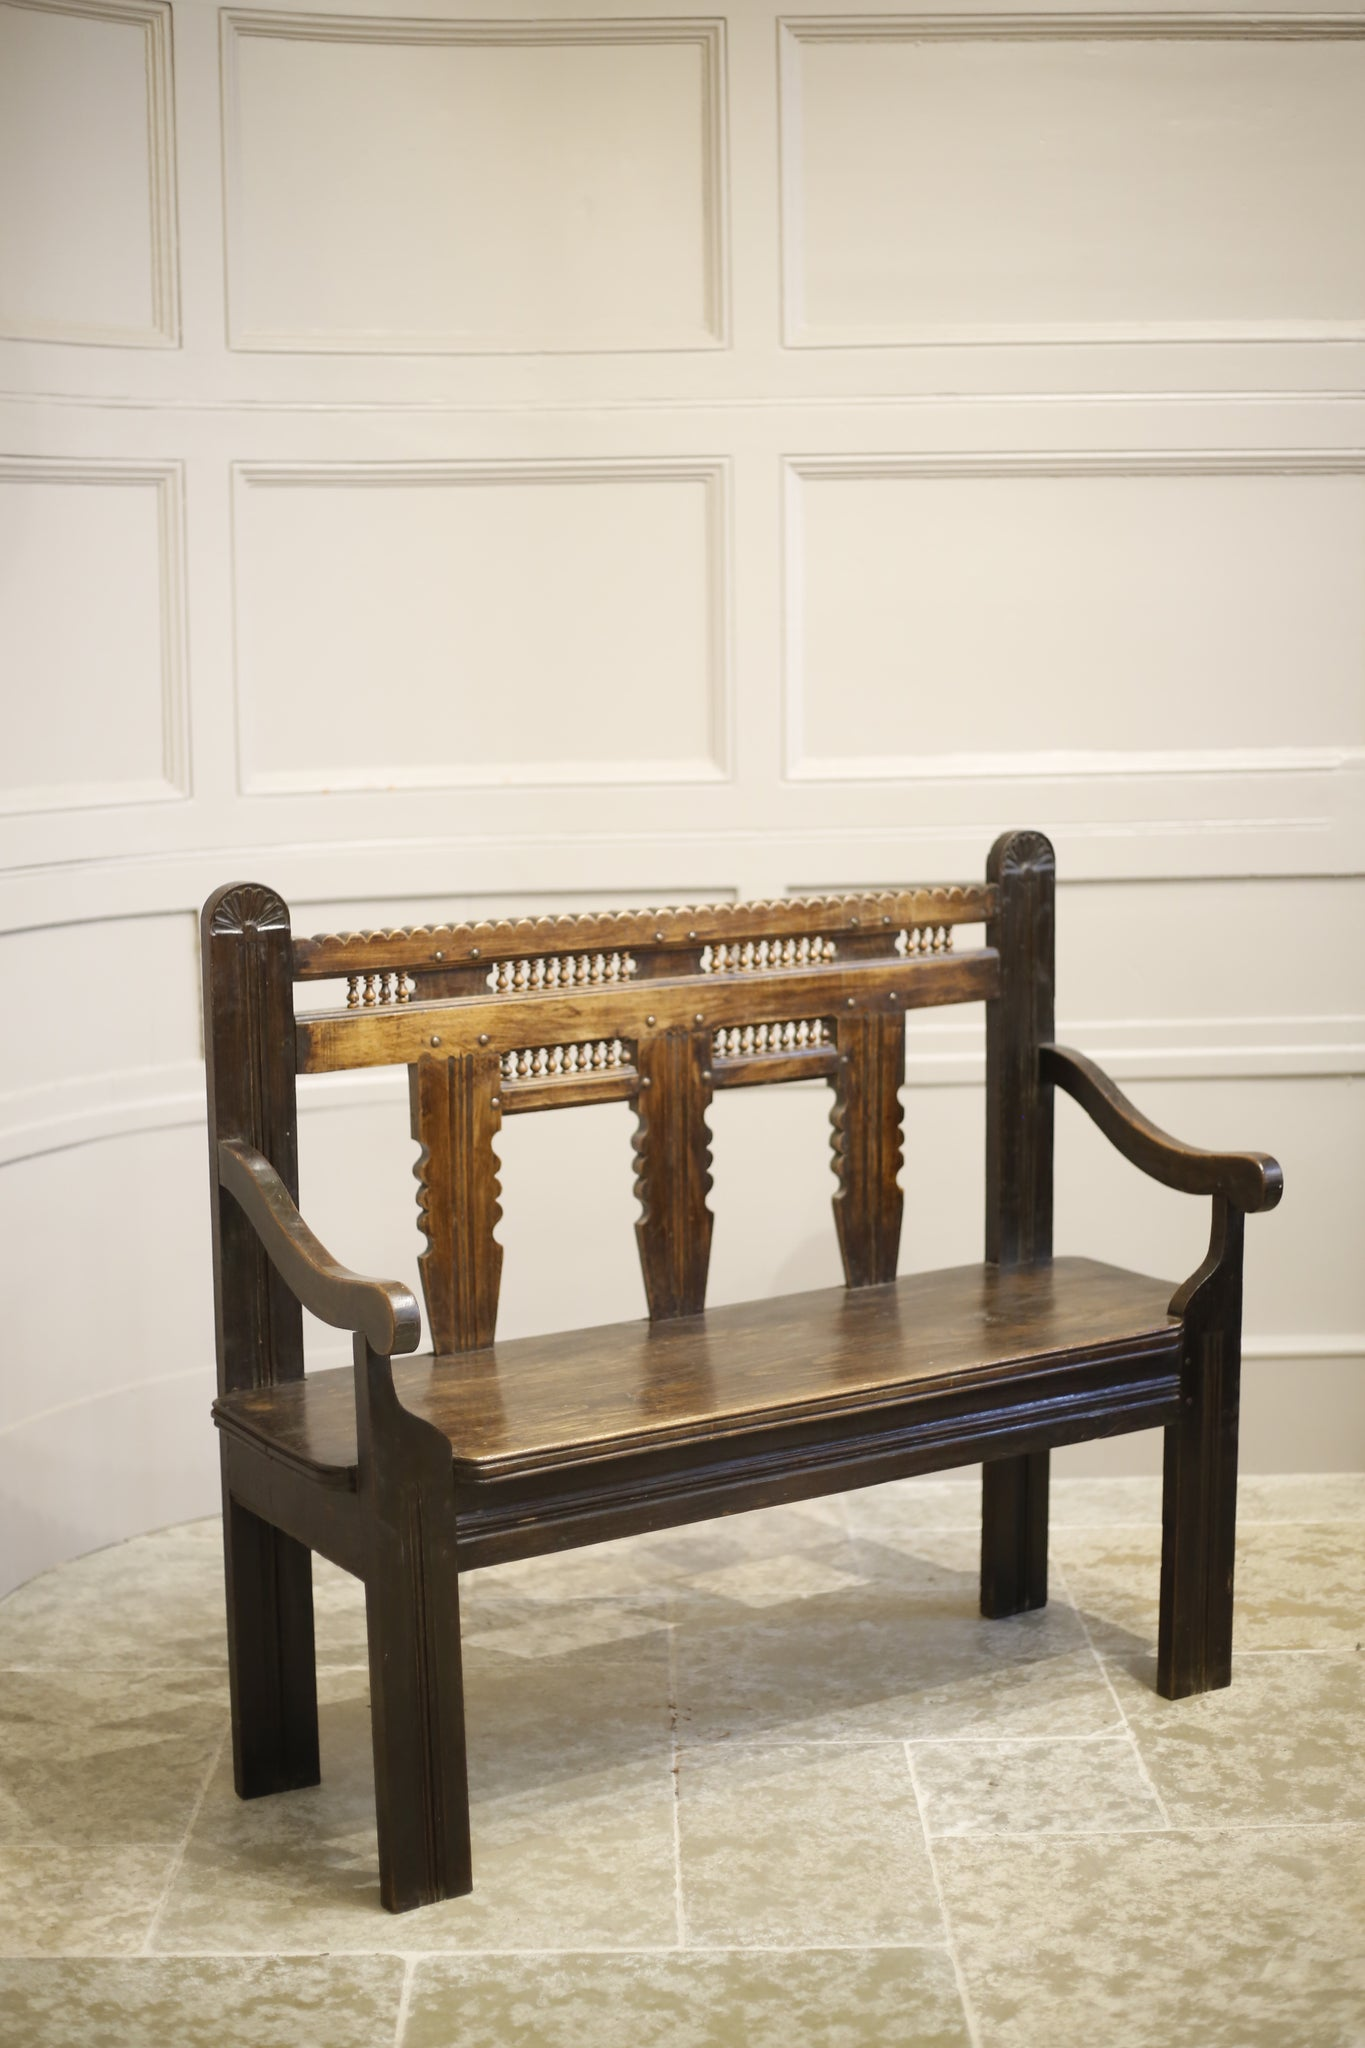 19th century French Breton country bench